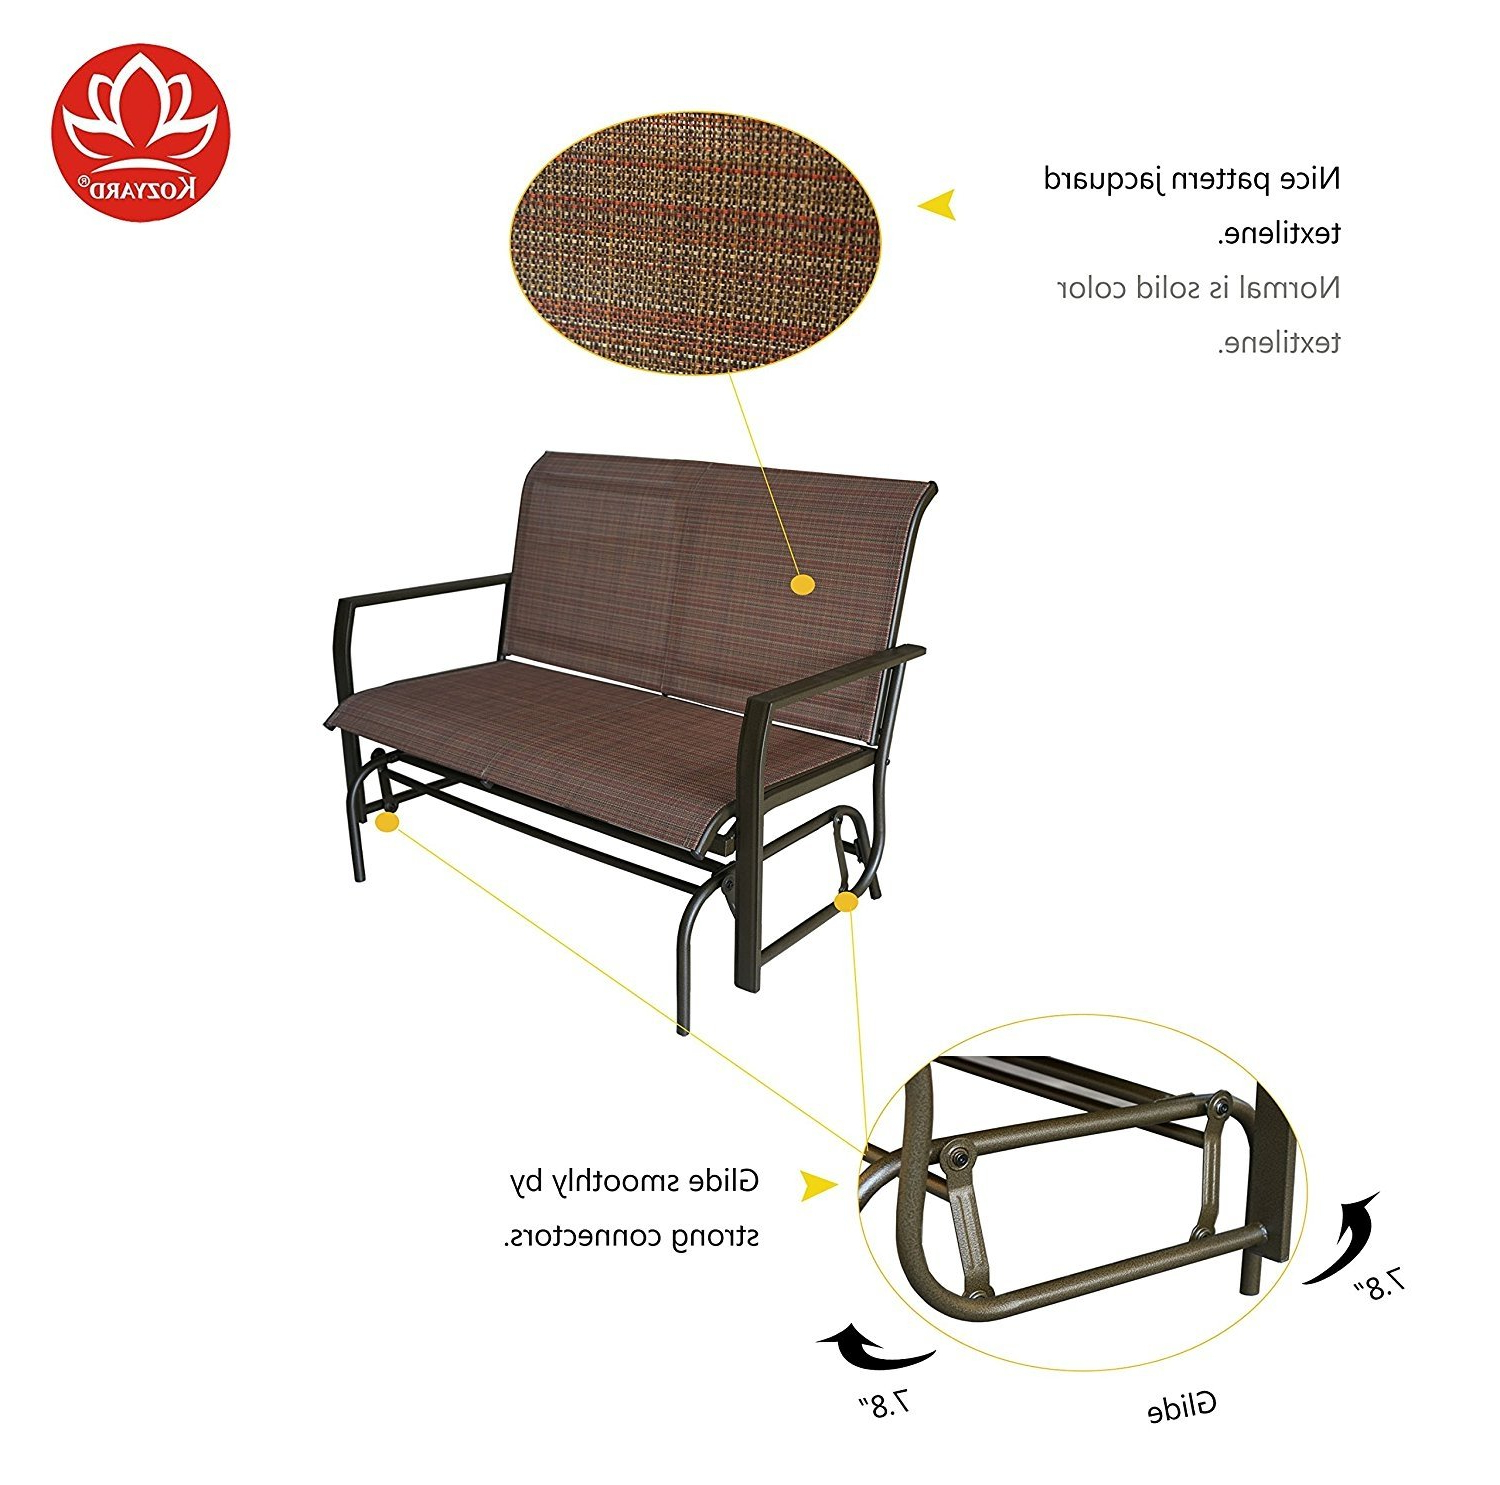 Preferred Rocking Love Seats Glider Swing Benches With Sturdy Frame For Kozyard Cozy Two Rocking Love Seats Glider Swing Bench (View 15 of 30)